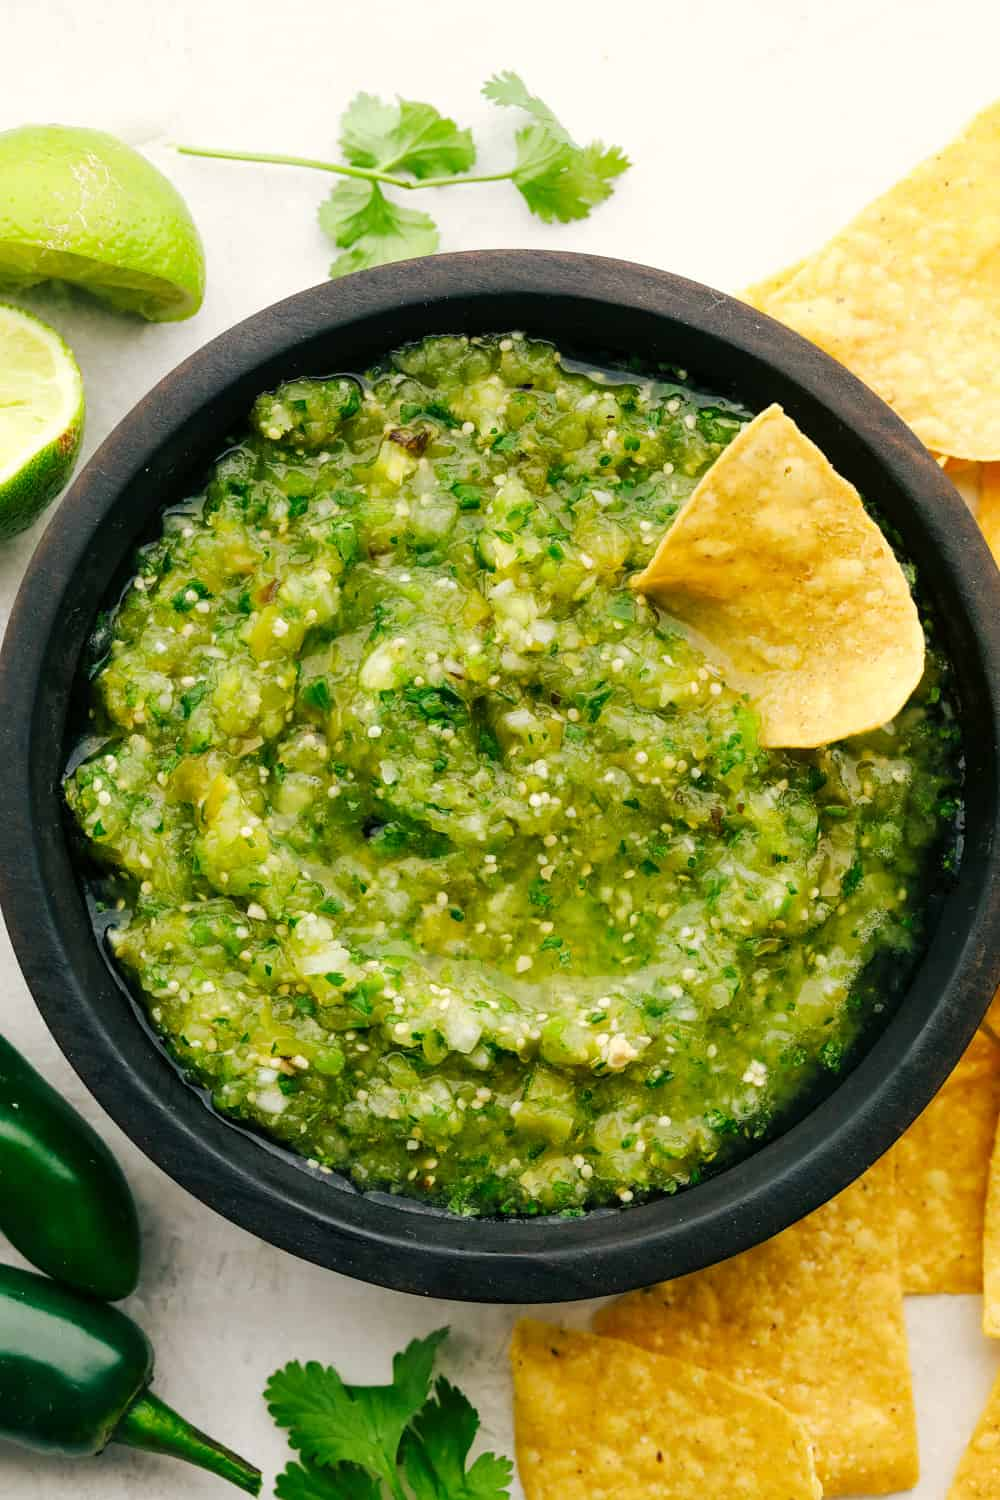 Fresh homemade salsa verde.